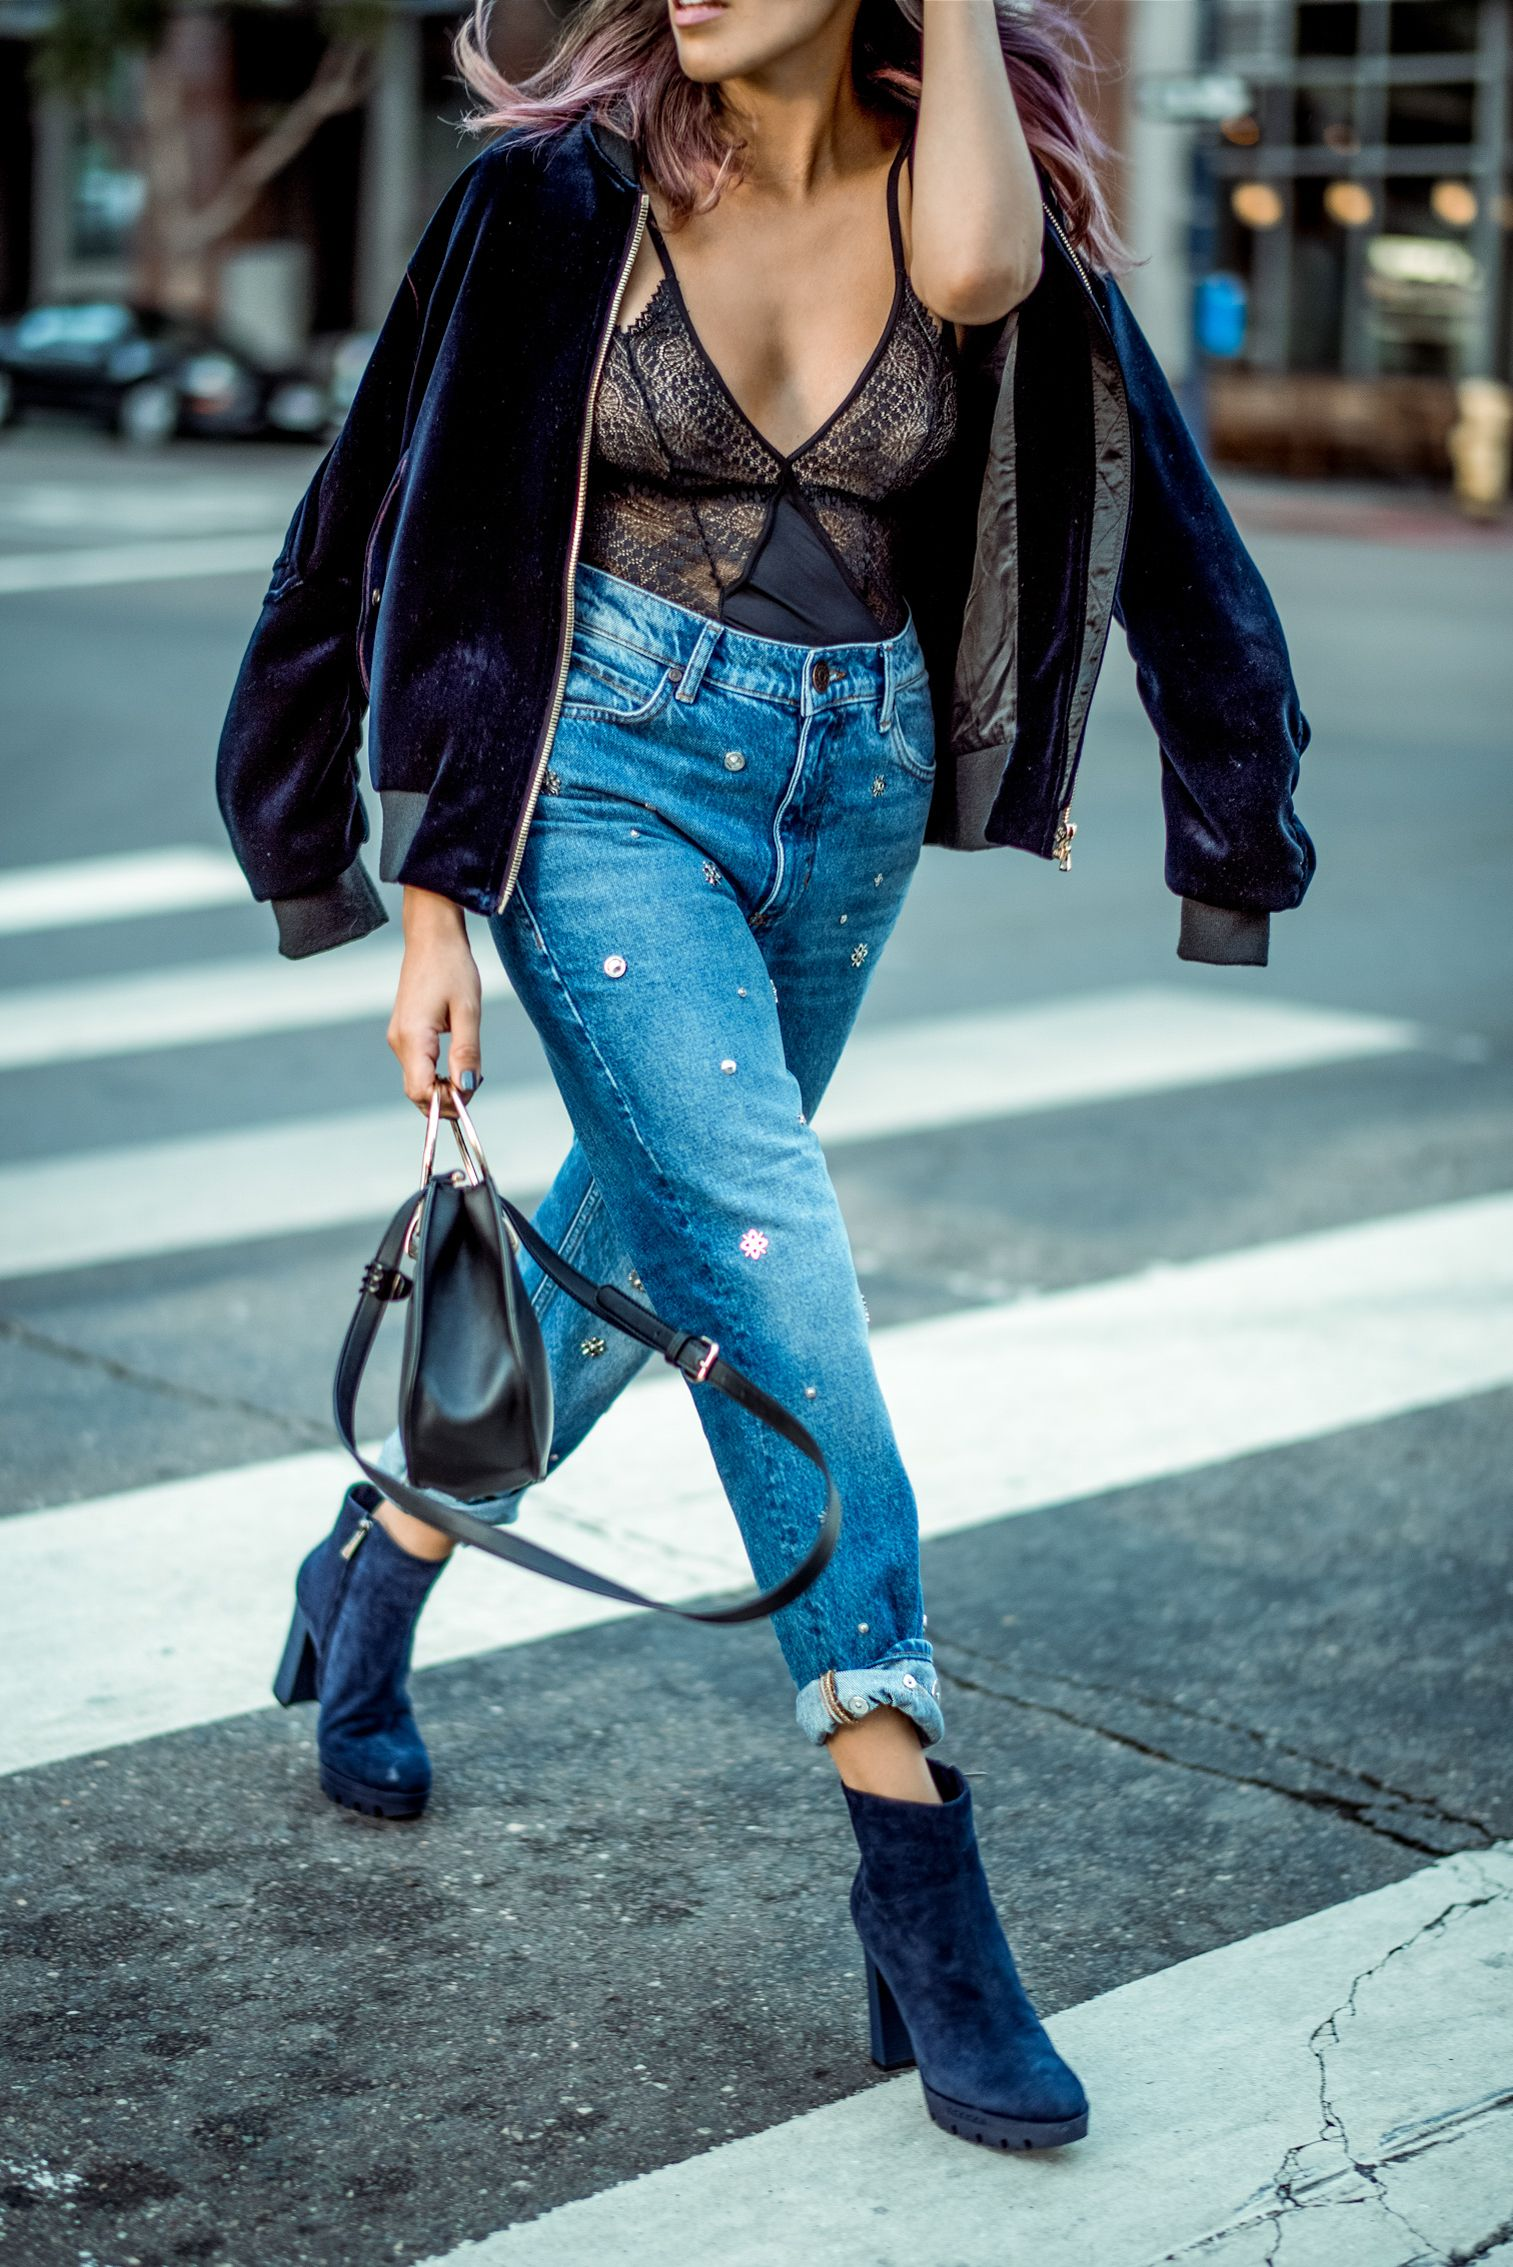 Image result for skimpy tops with boyfriend jeans